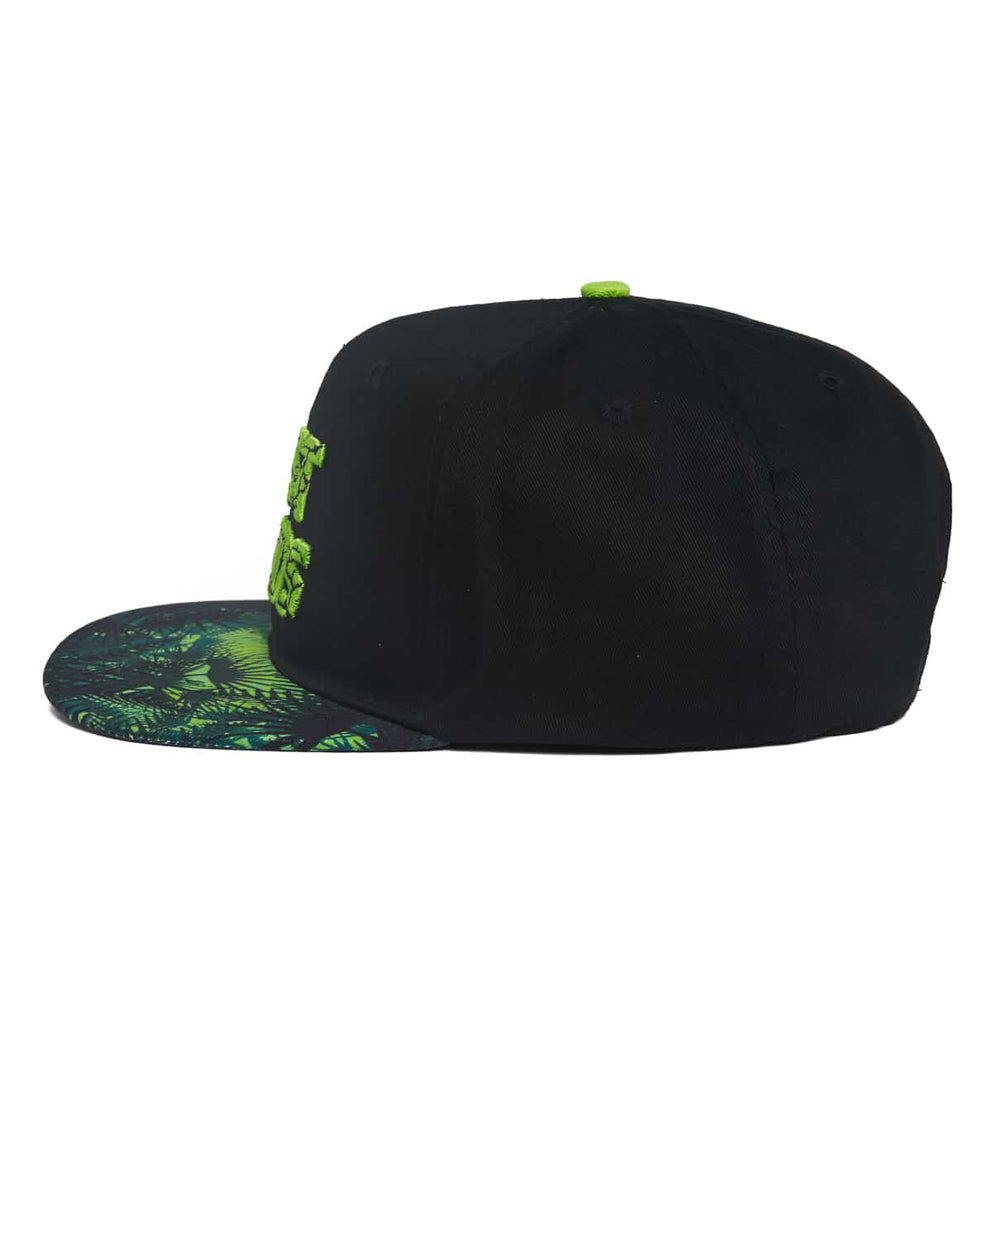 Lost Lands 2018 Foliage Snapback - Black/Green